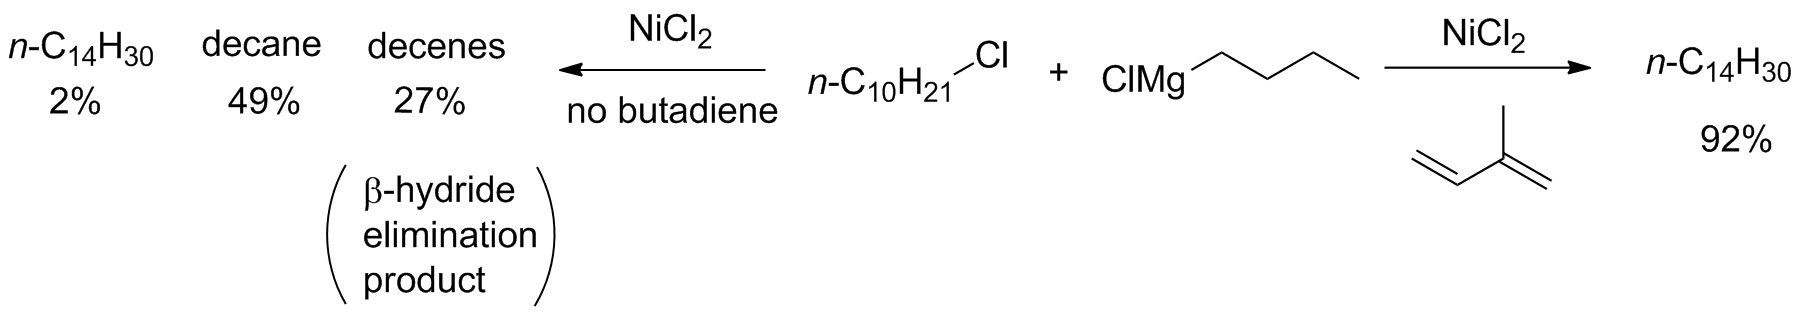 File:Butadiene effect png - Wikimedia Commons